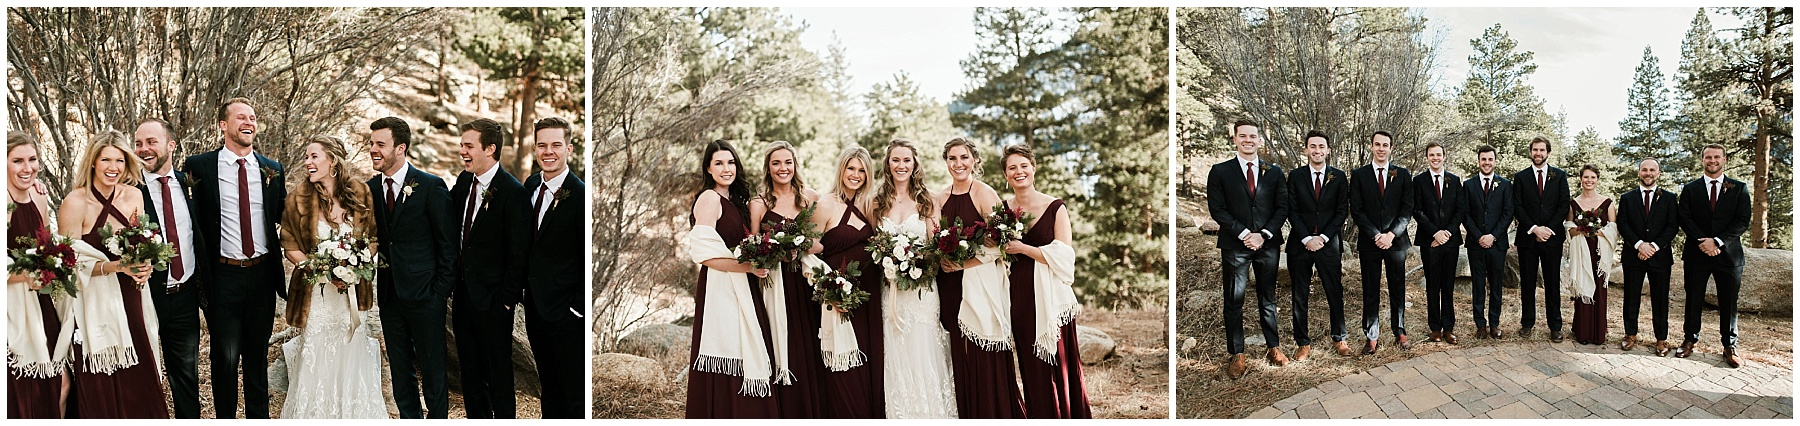 Katesalleyphotography-258_Haley and Dan get married in Estes Park.jpg